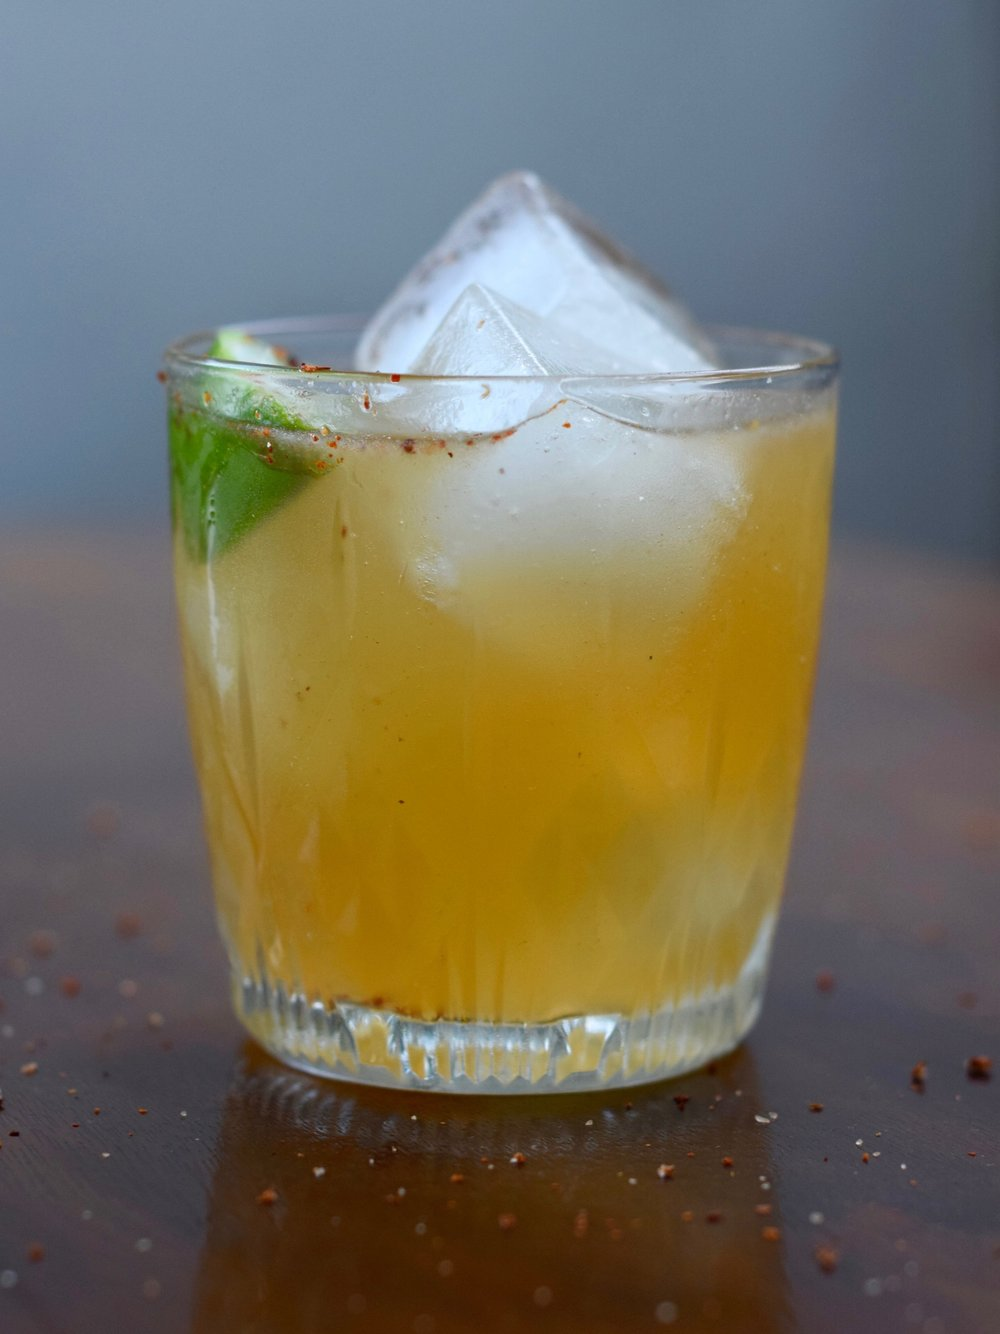 DIRTY DOVE - 2 oz tequila or mezcal1/2 oz nostrum grapefruit piloncillo chipotle shrub1/2 oz fresh lime juice3 oz ginger beerBuild over ice.